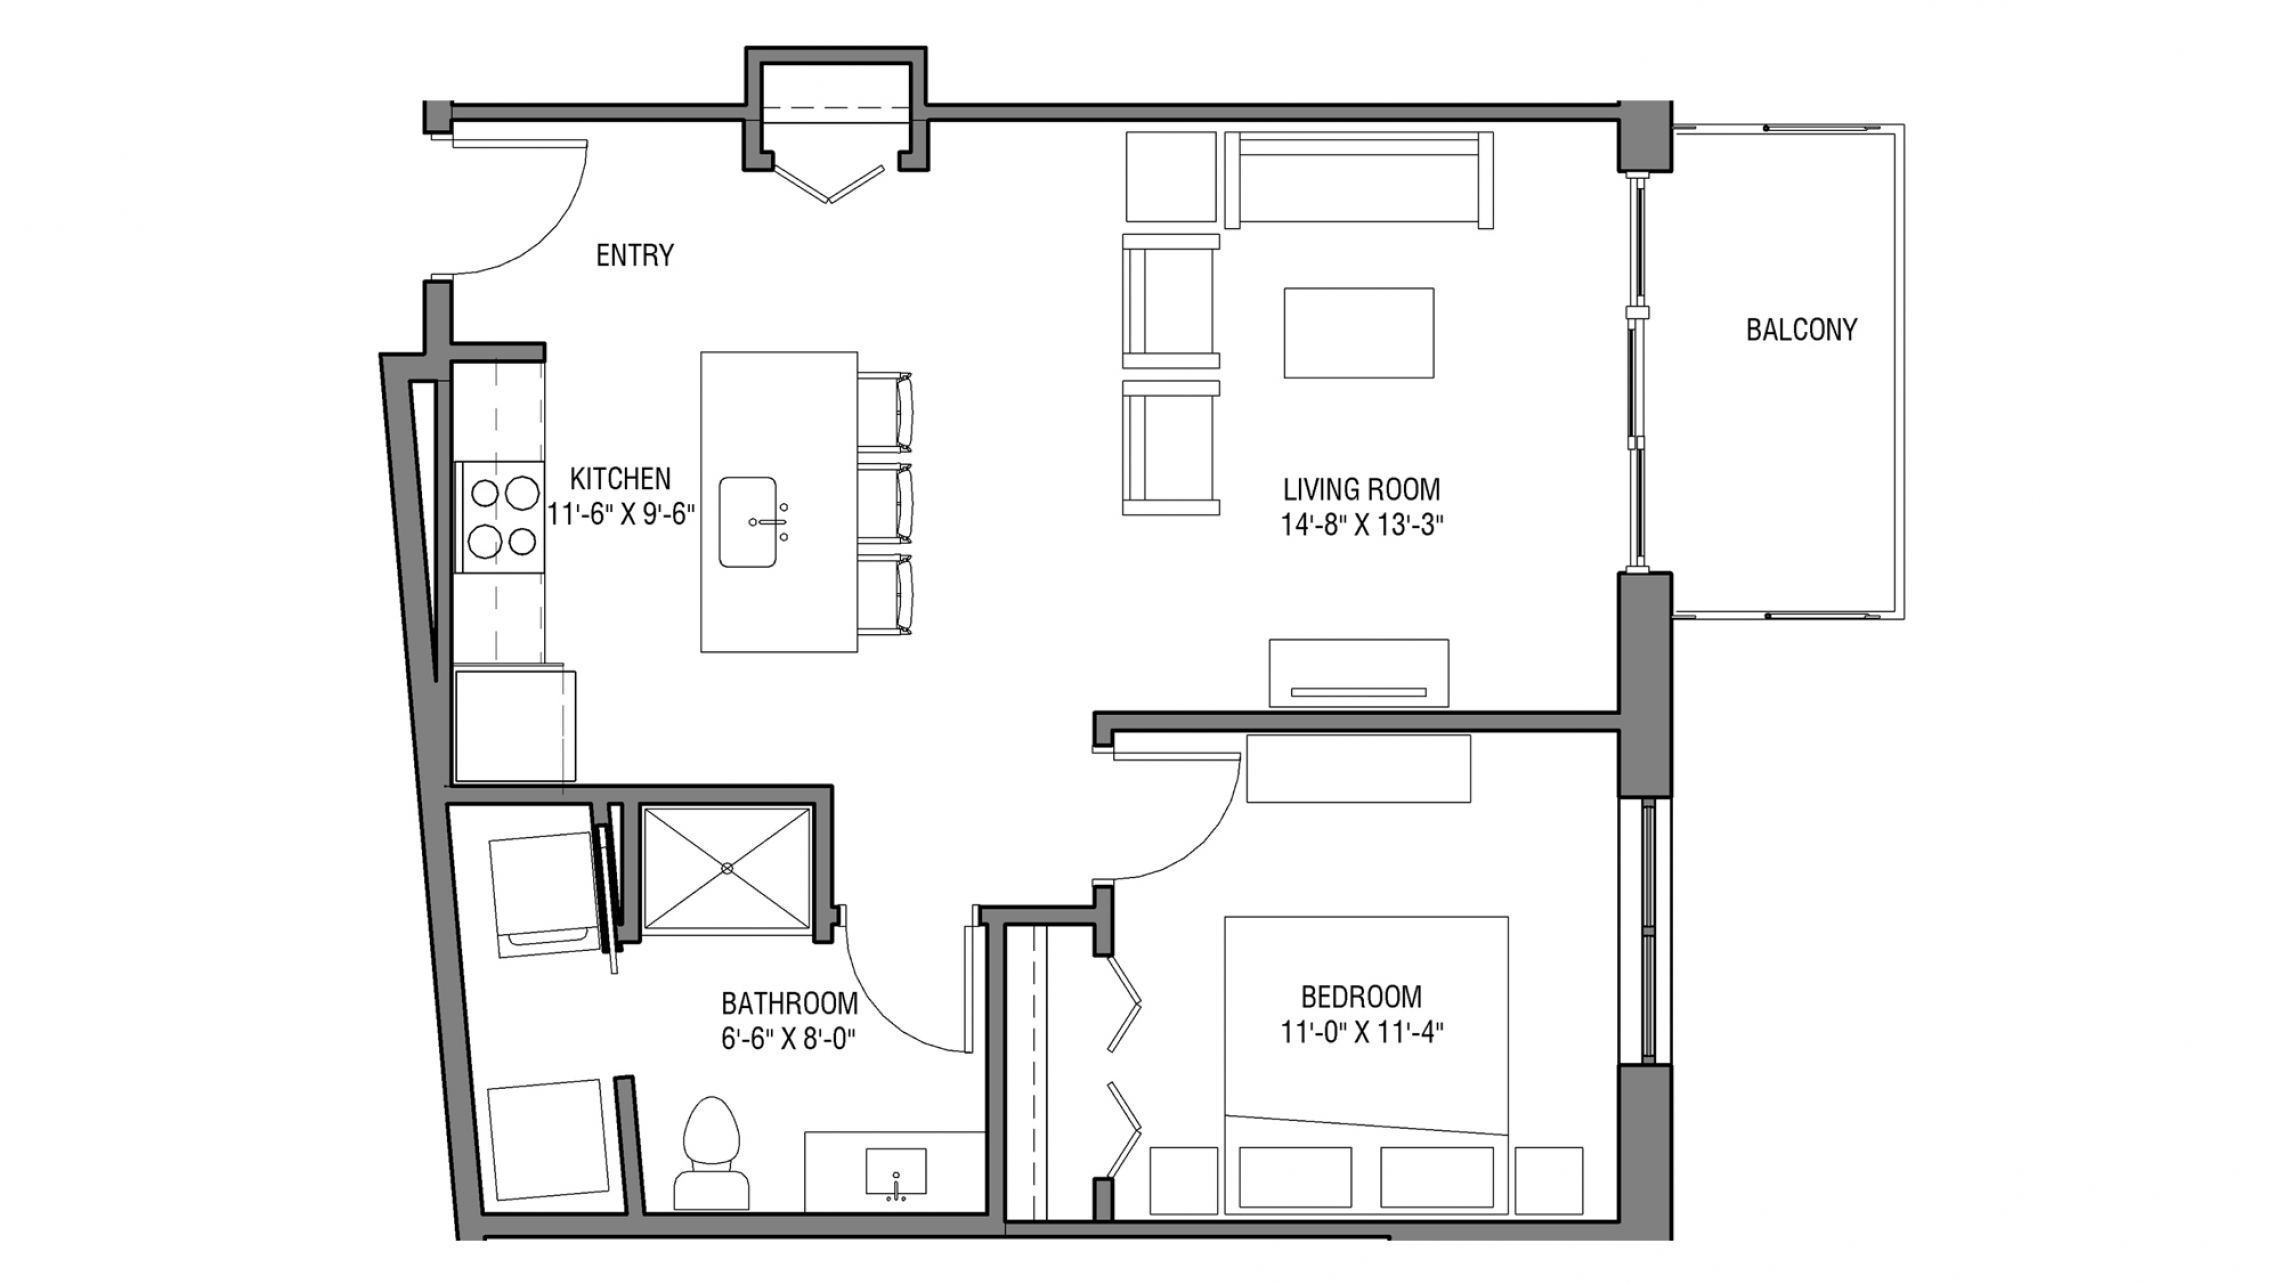 ULI Nine Line 407 - One Bedroom, One Bathroom